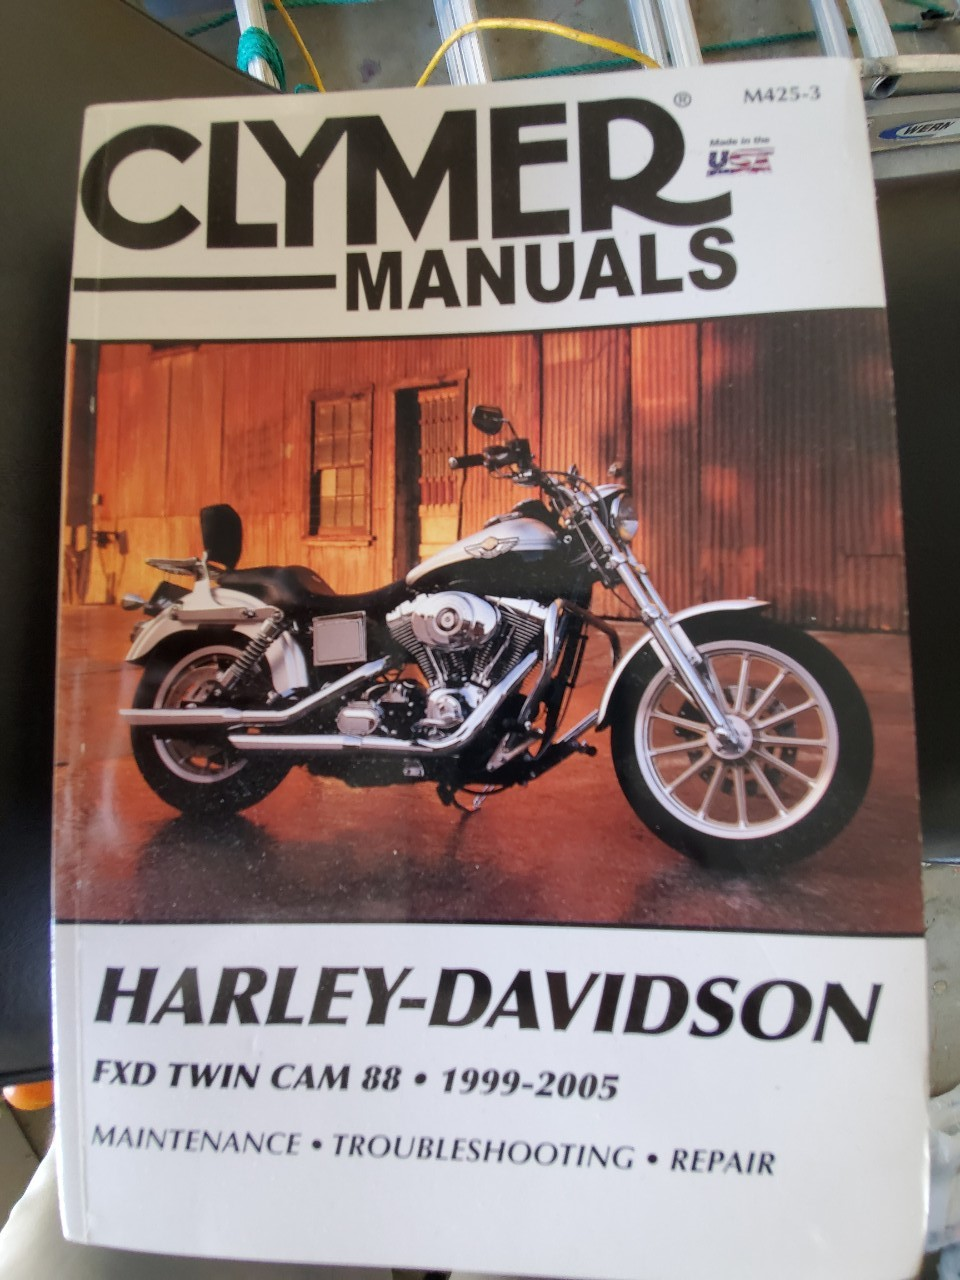 Dyna For Sale - Harley-Davidson Sport Touring Motorcycles